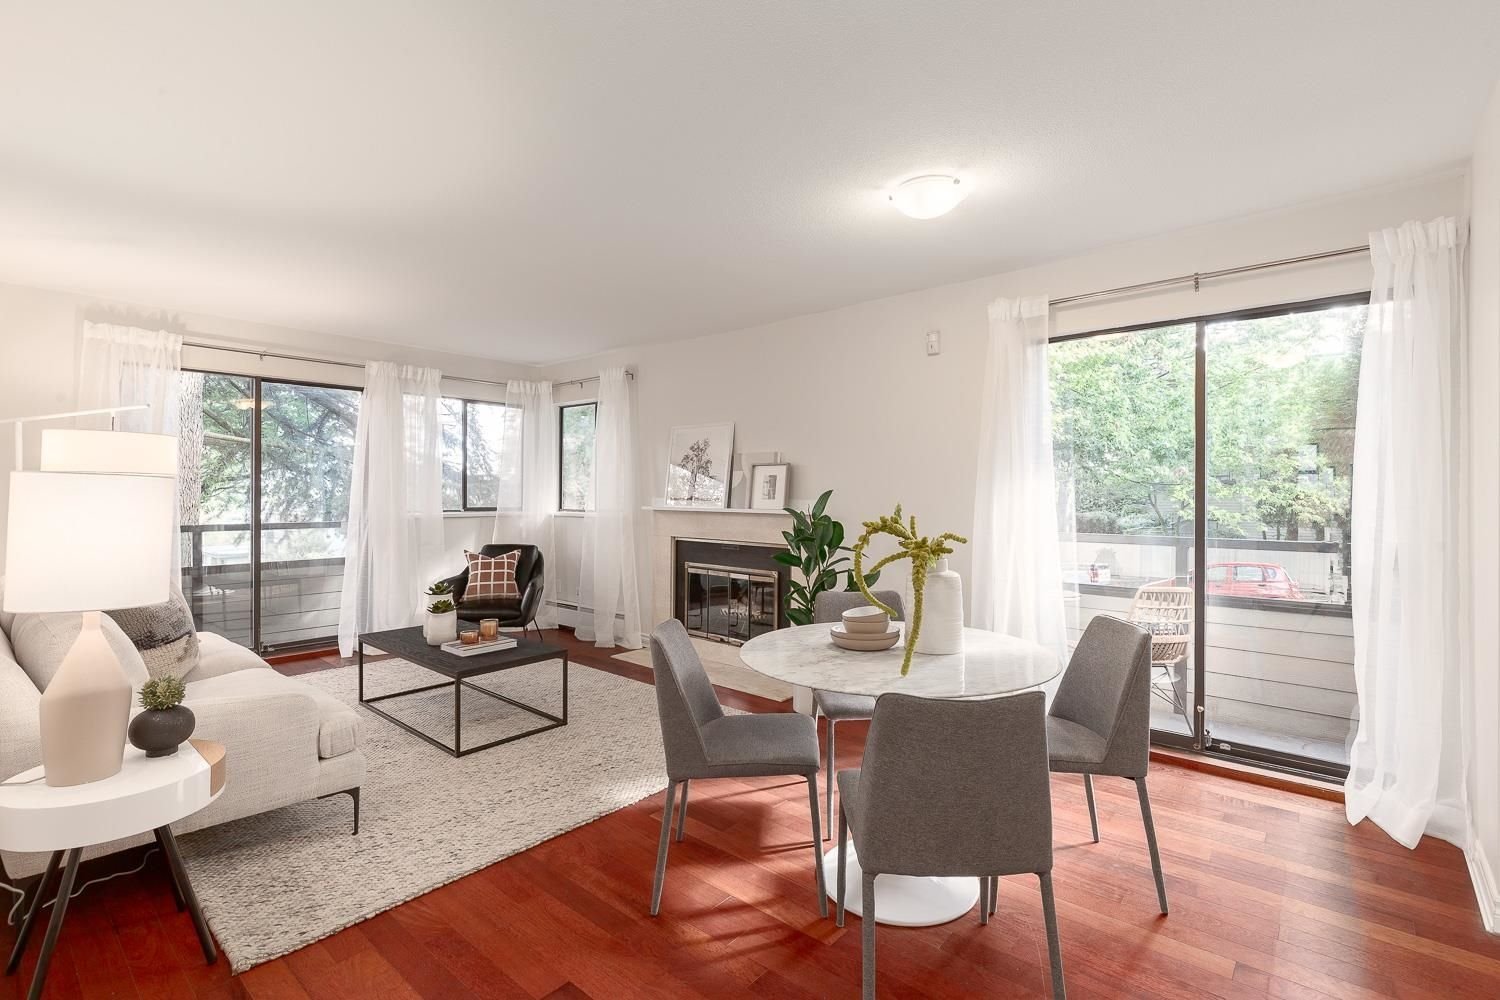 Main Photo: 1 2255 PRINCE ALBERT Street in Vancouver: Mount Pleasant VE Condo for sale (Vancouver East)  : MLS®# R2615294